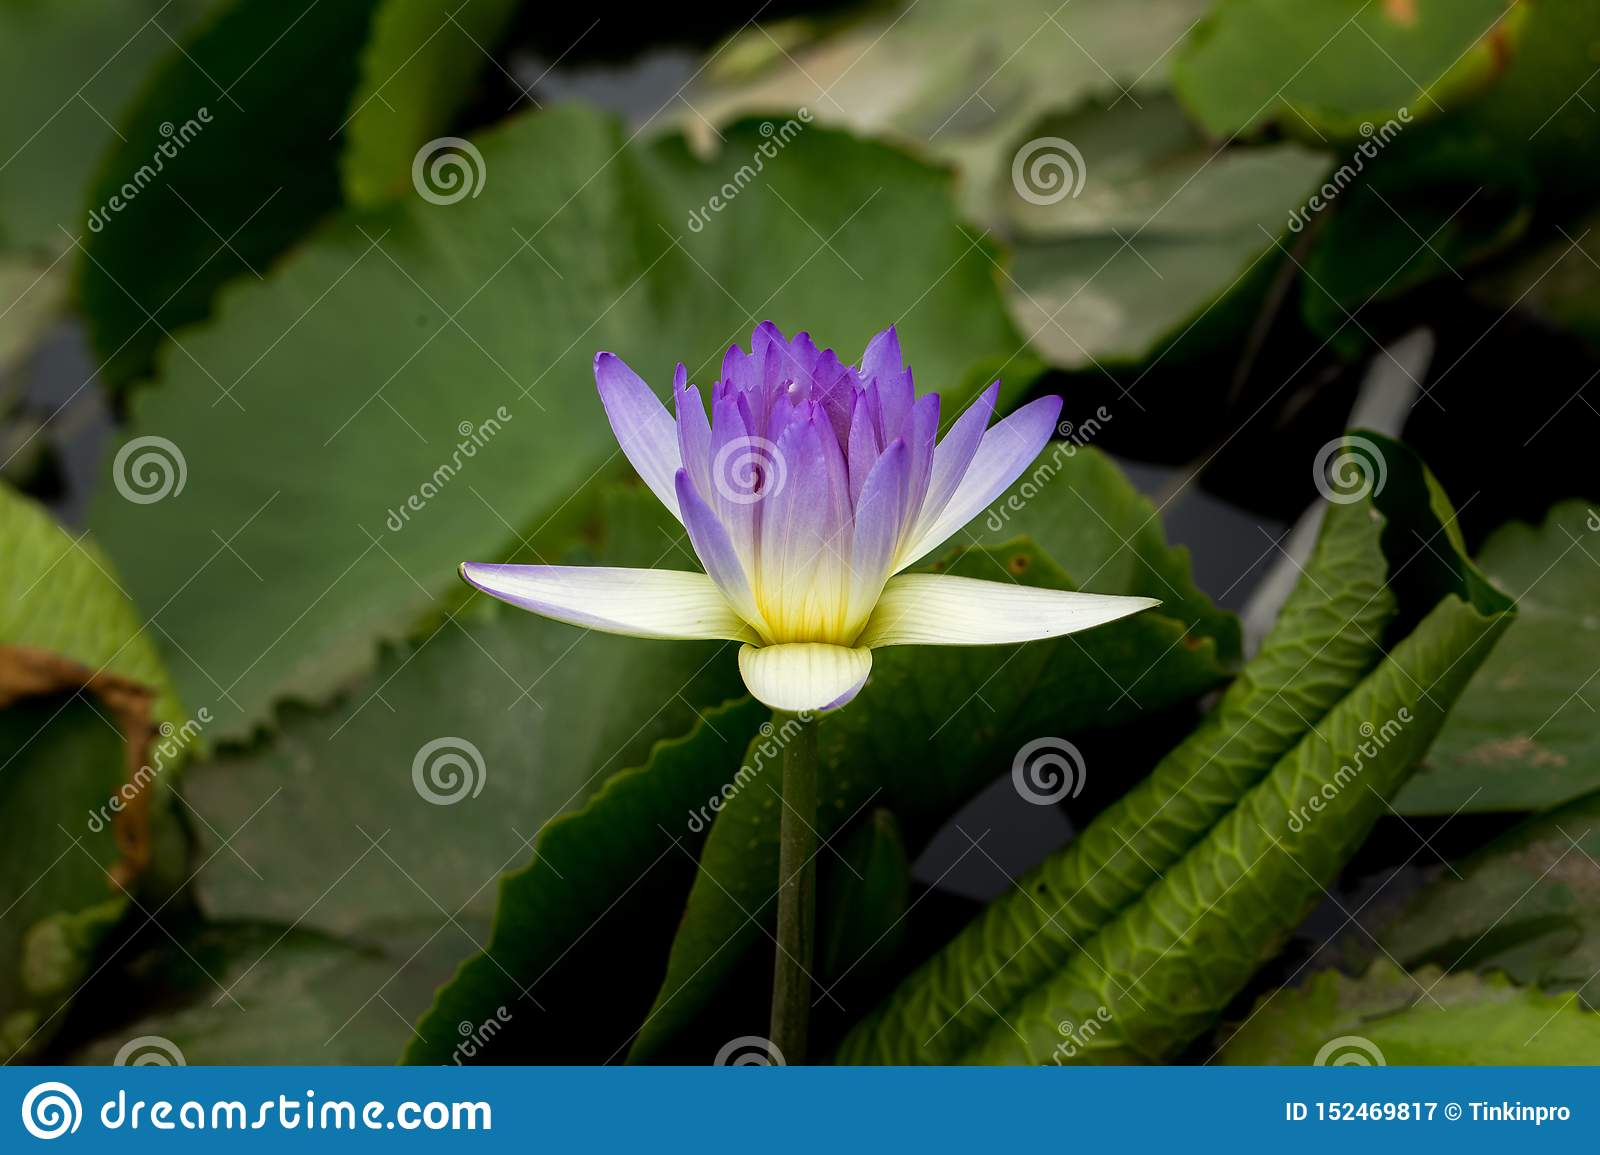 Wanter, Flower, Close Up, Plant, Purple, Purple Lily, Purple Teichrose, Purple Flower, Violet, Purple Water Lily